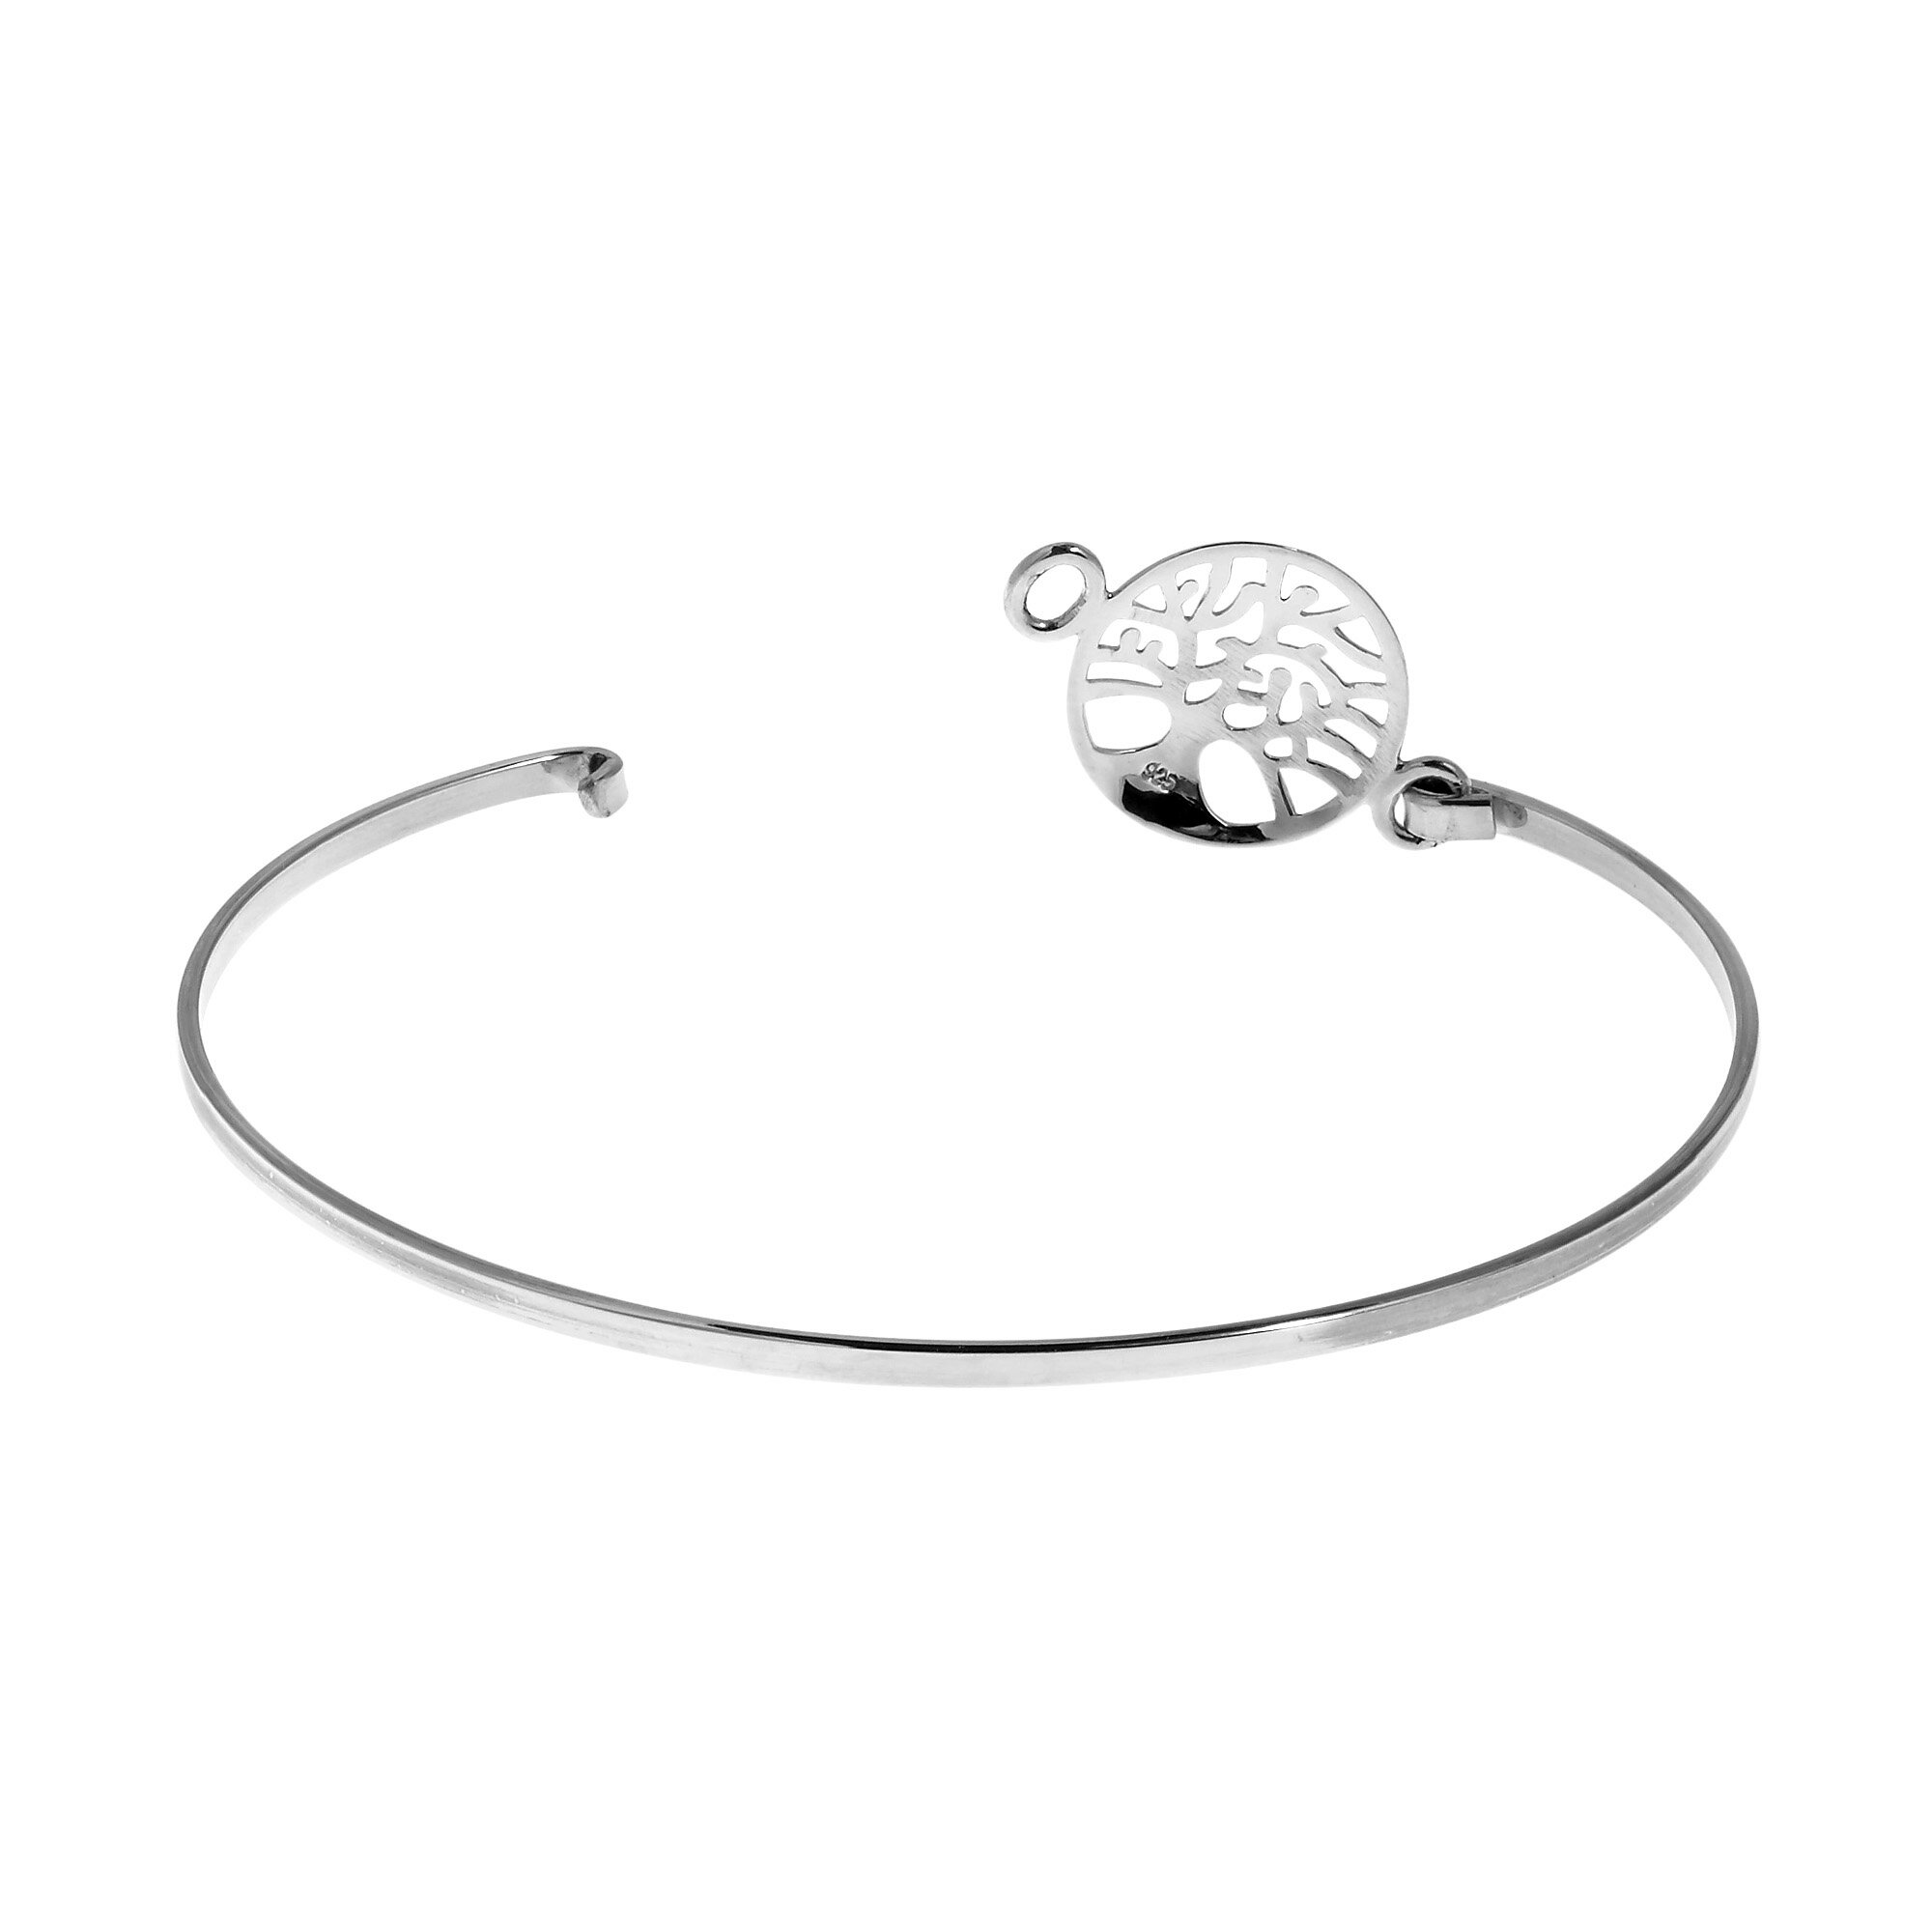 Mystical Tree Of Life .925 Sterling Silver Bangle Bracelet (Thailand) 3